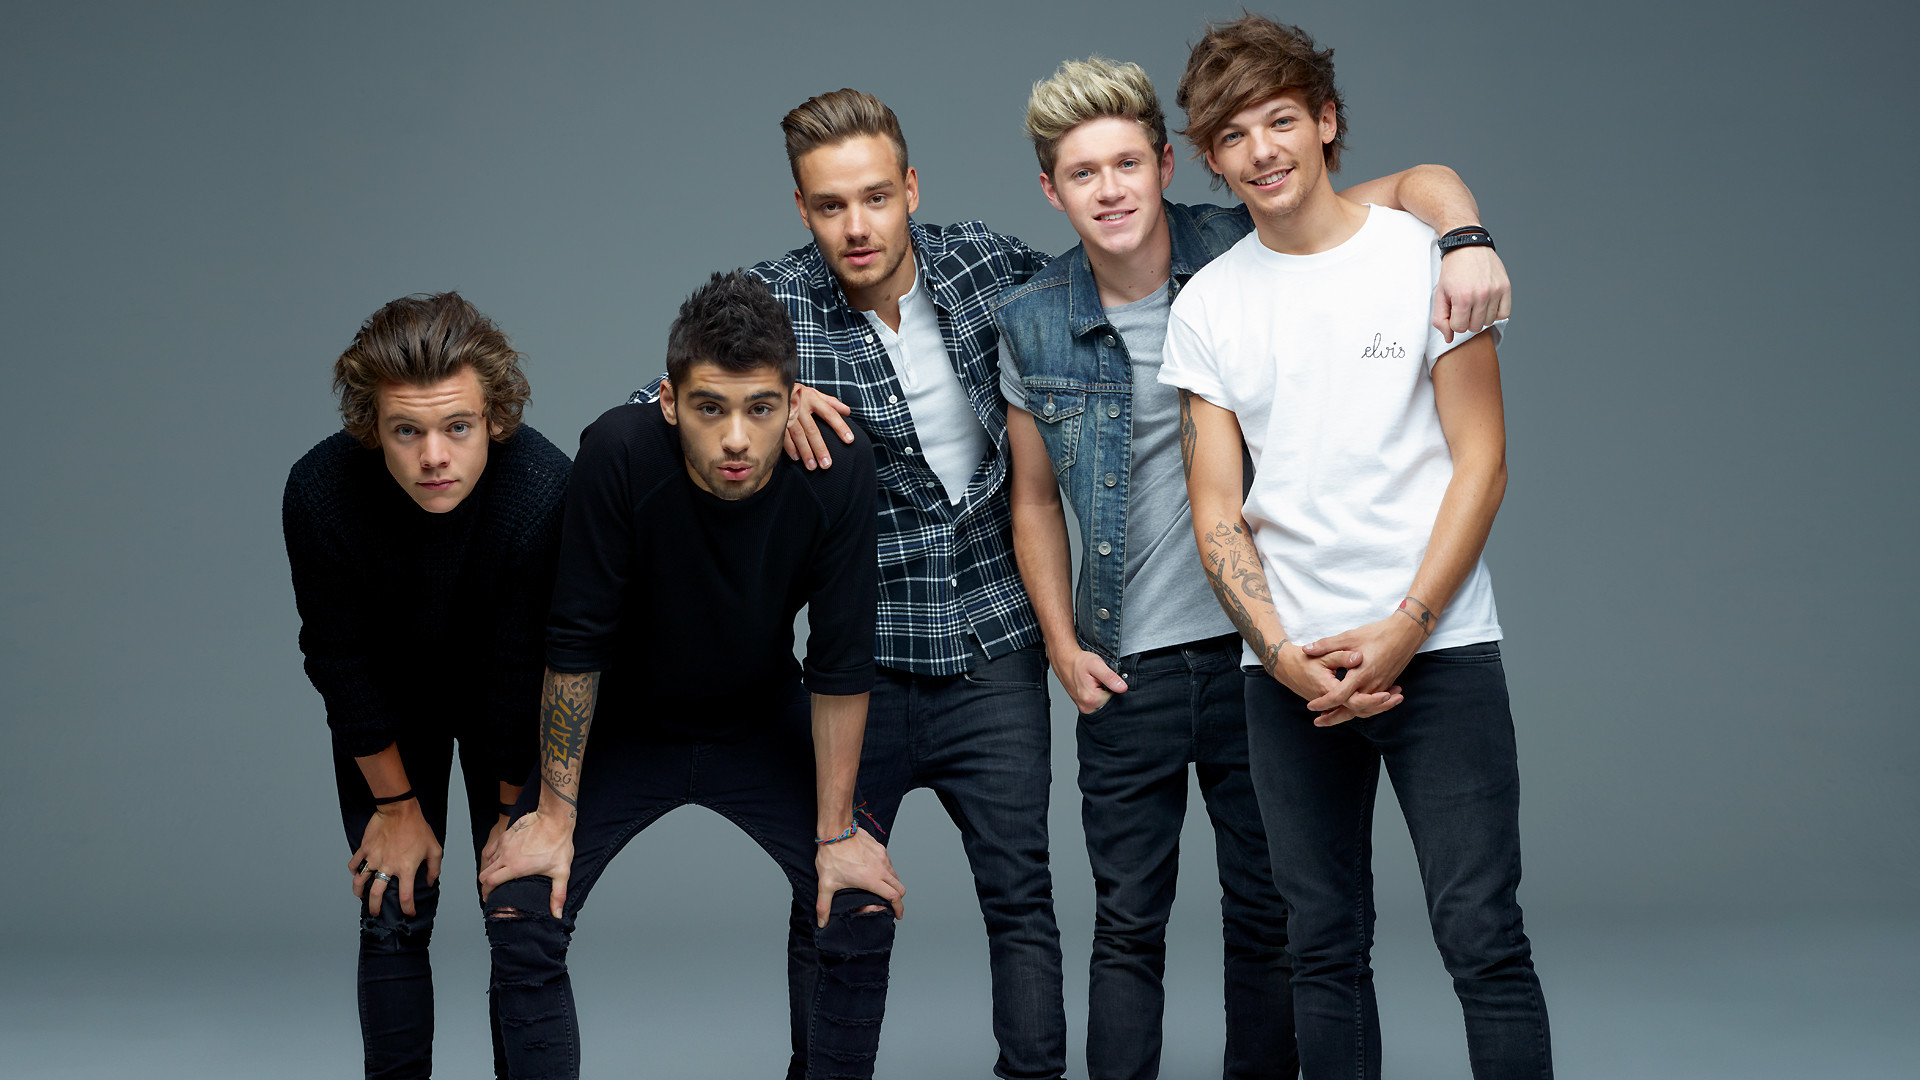 One Direction Wallpapers HD | Wallpapers, Backgrounds, Images, Art ..